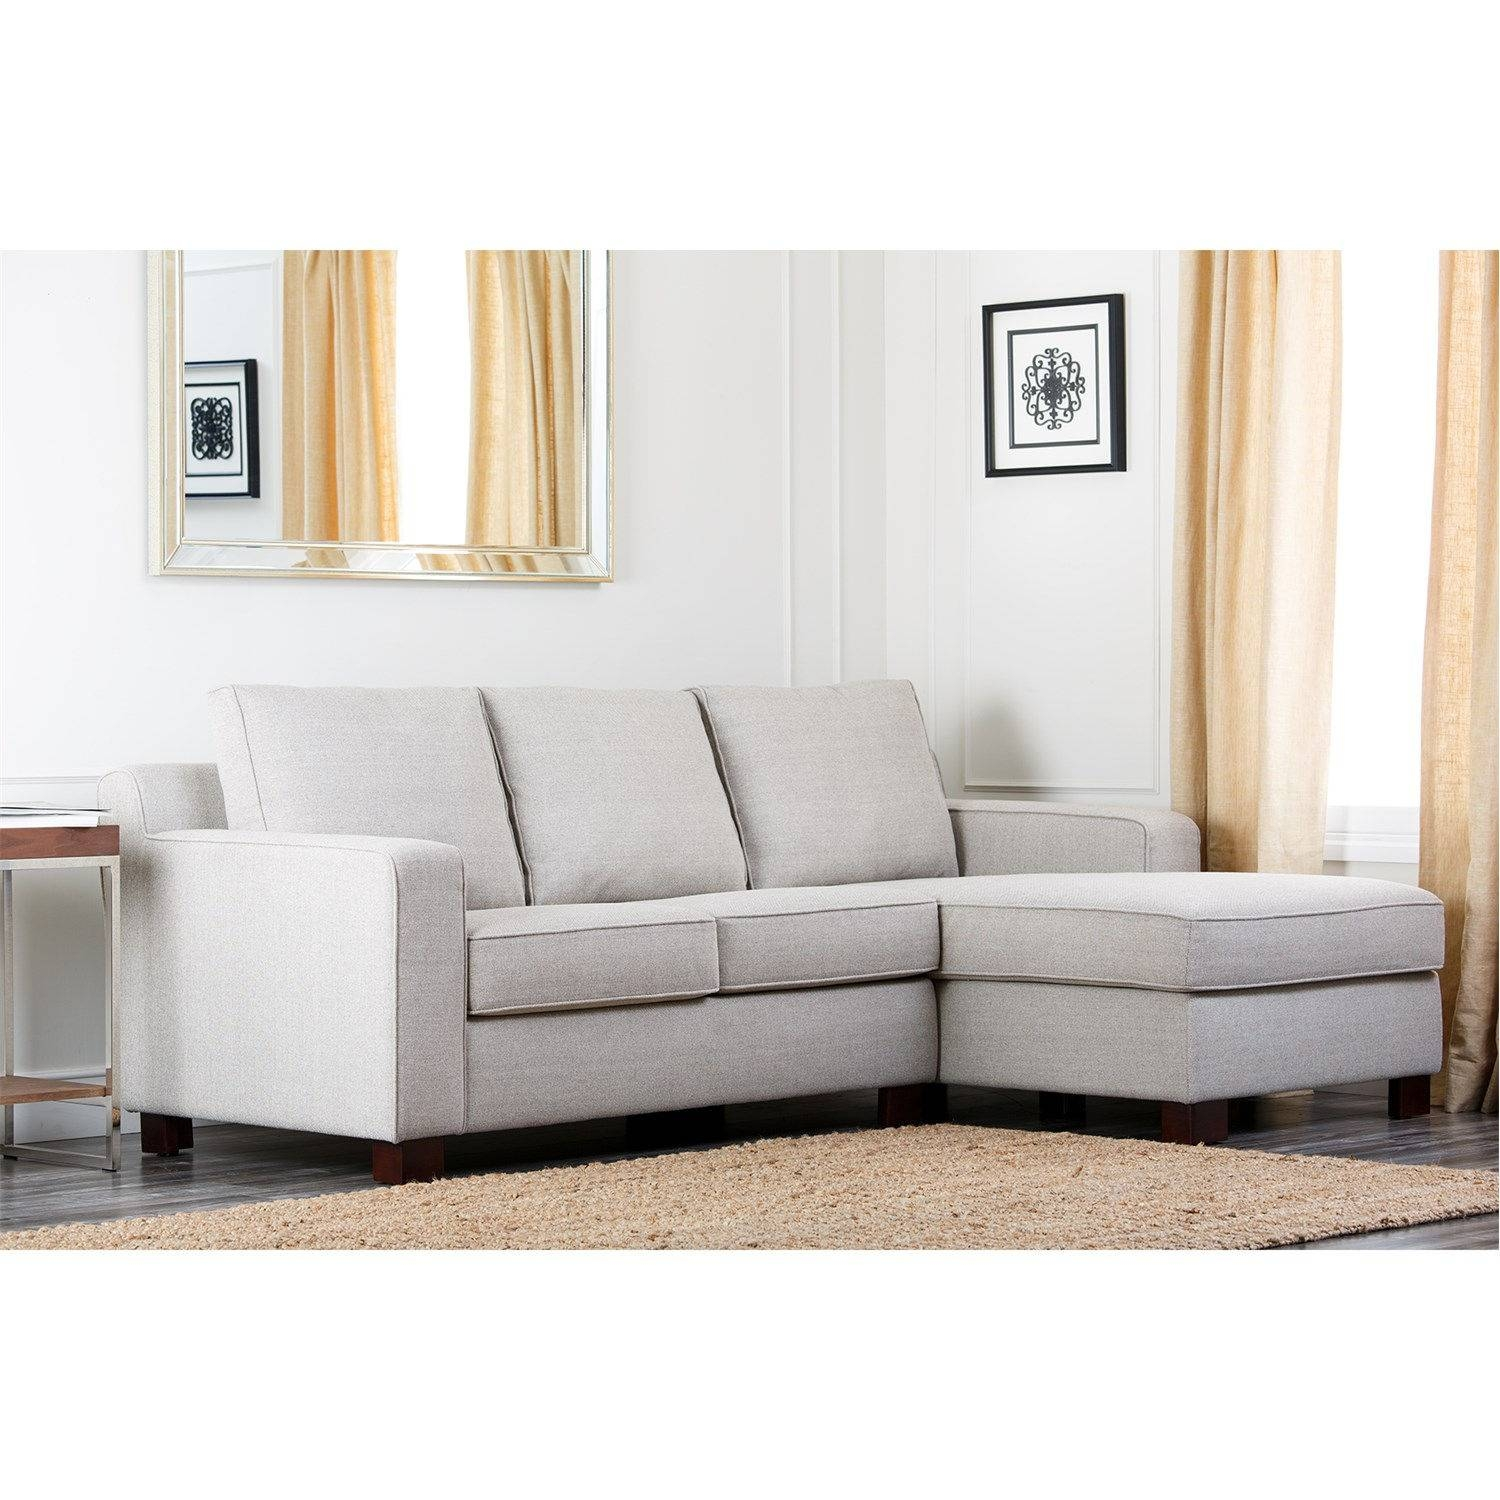 Abbyson Sectional Sofa With Design Hd Photos 24742 | Kengire for Abbyson Sectional Sofa (Image 16 of 30)